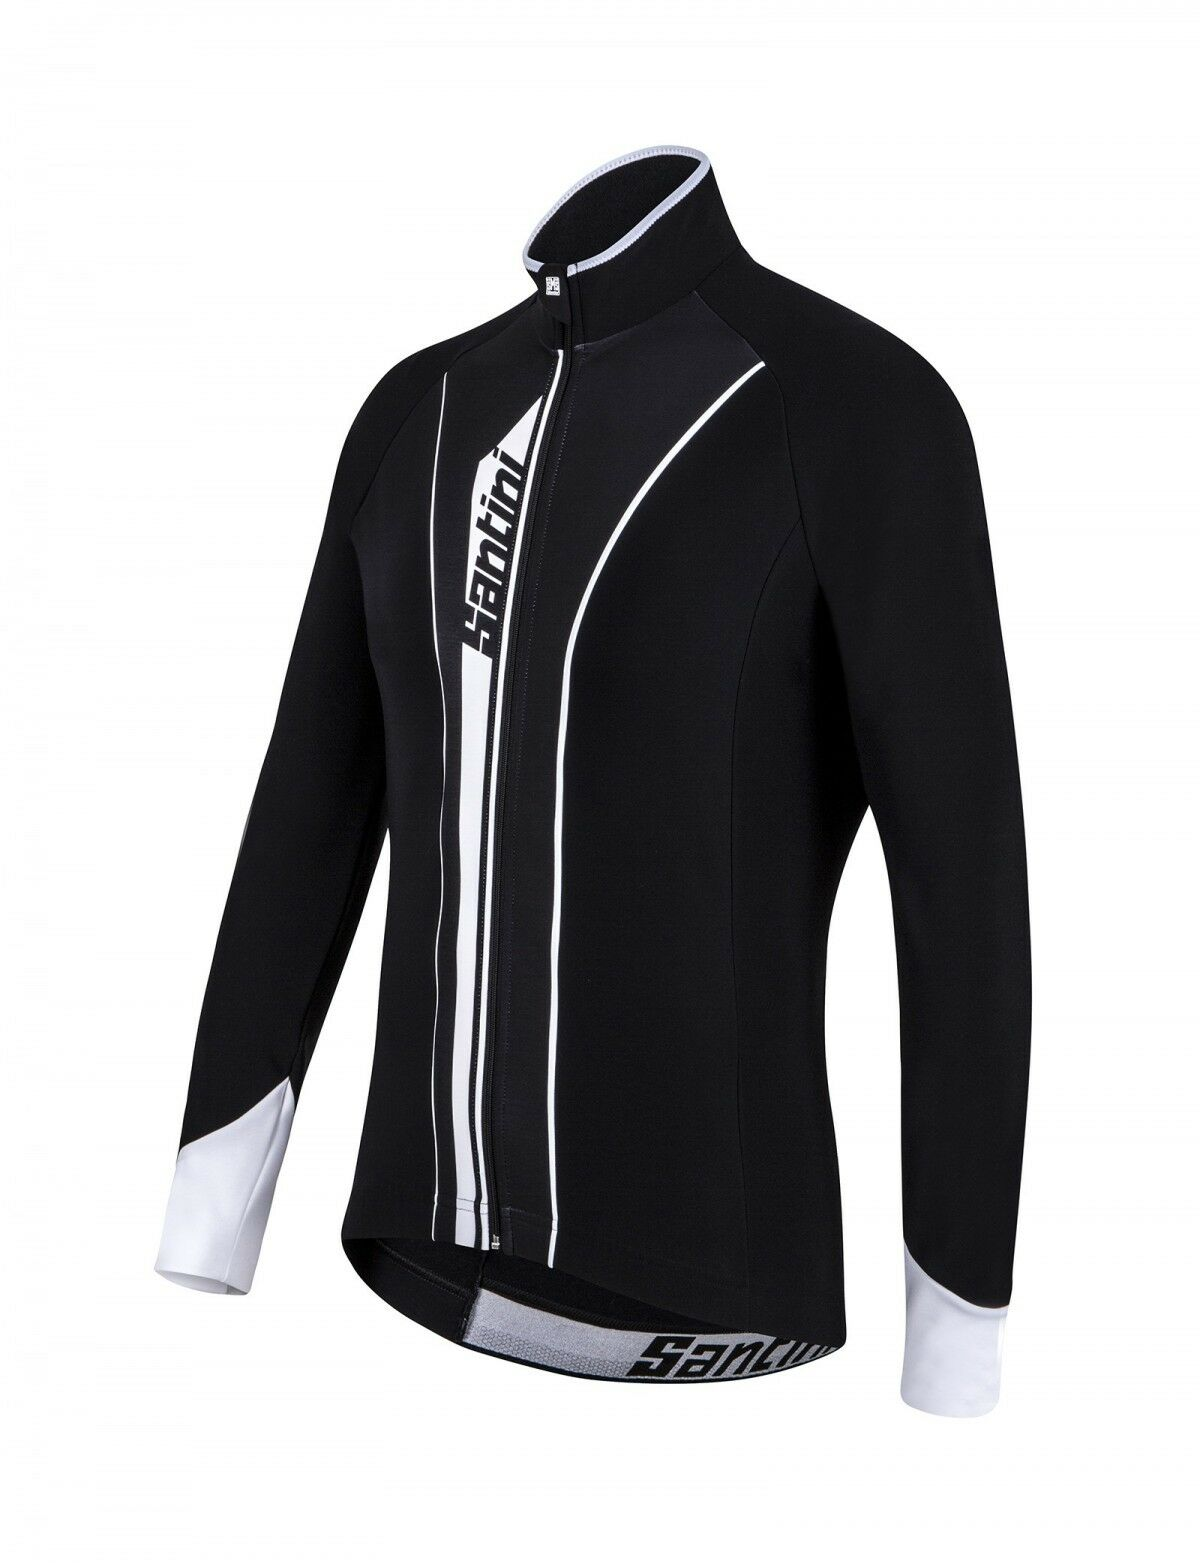 Vega Acqua Zero Long Sleeve Cycling Jersey  - Blk Whi - Made in  by Santini  sales online